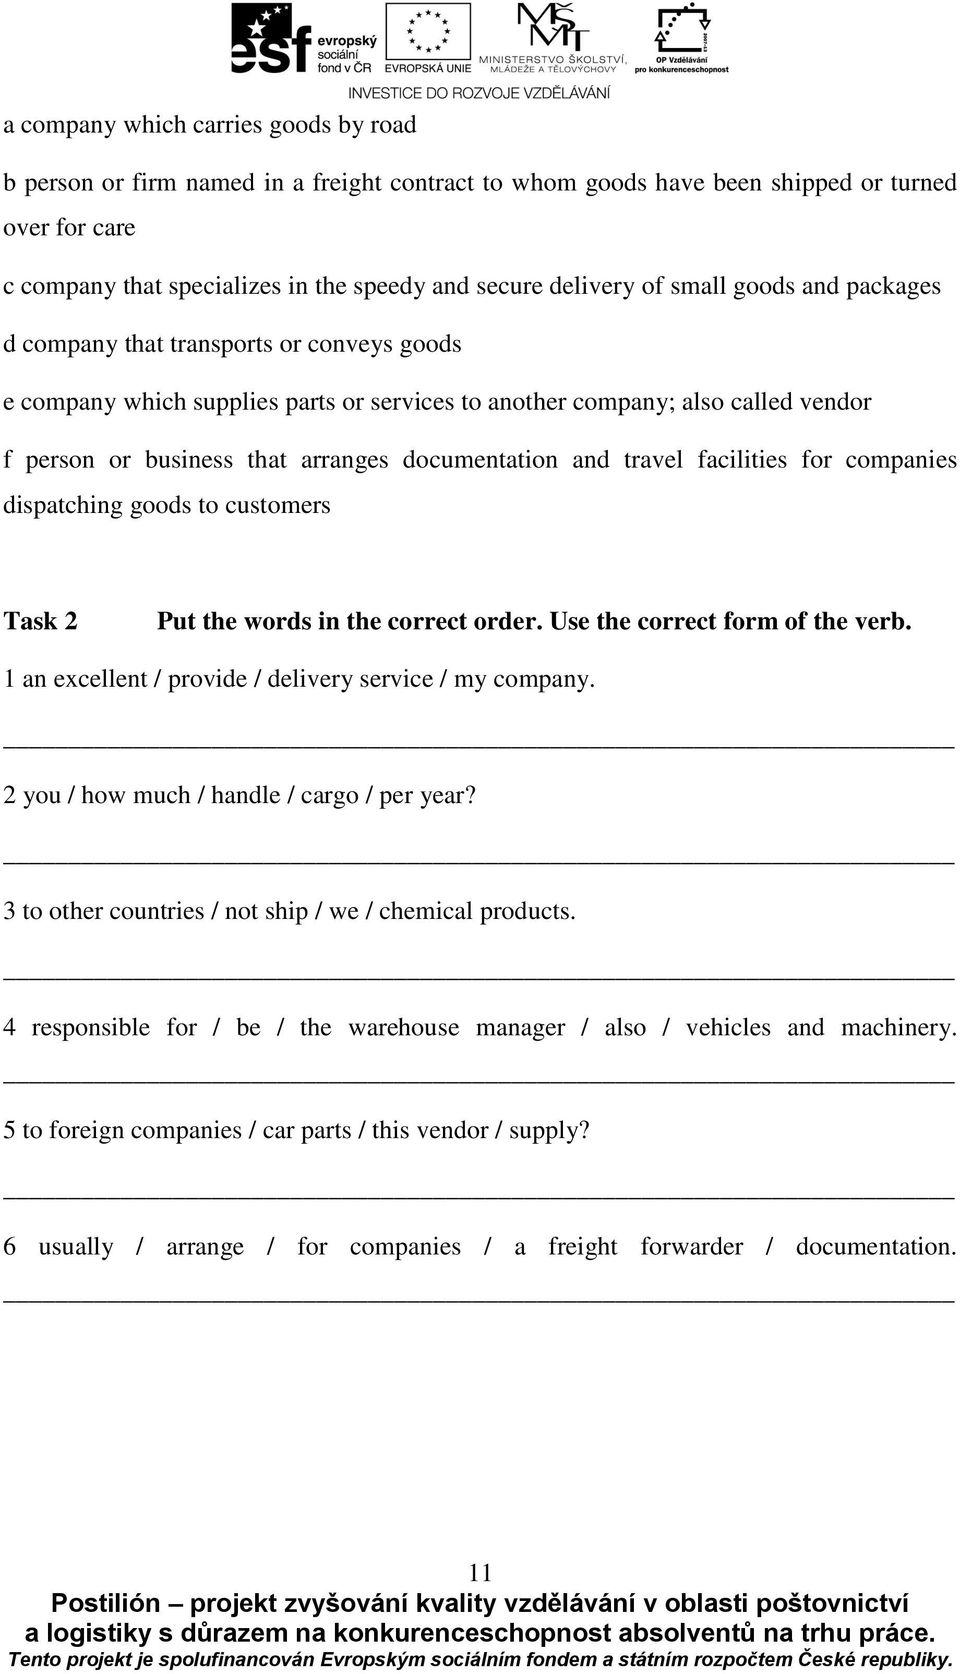 documentation and travel facilities for companies dispatching goods to customers Task 2 Put the words in the correct order. Use the correct form of the verb.